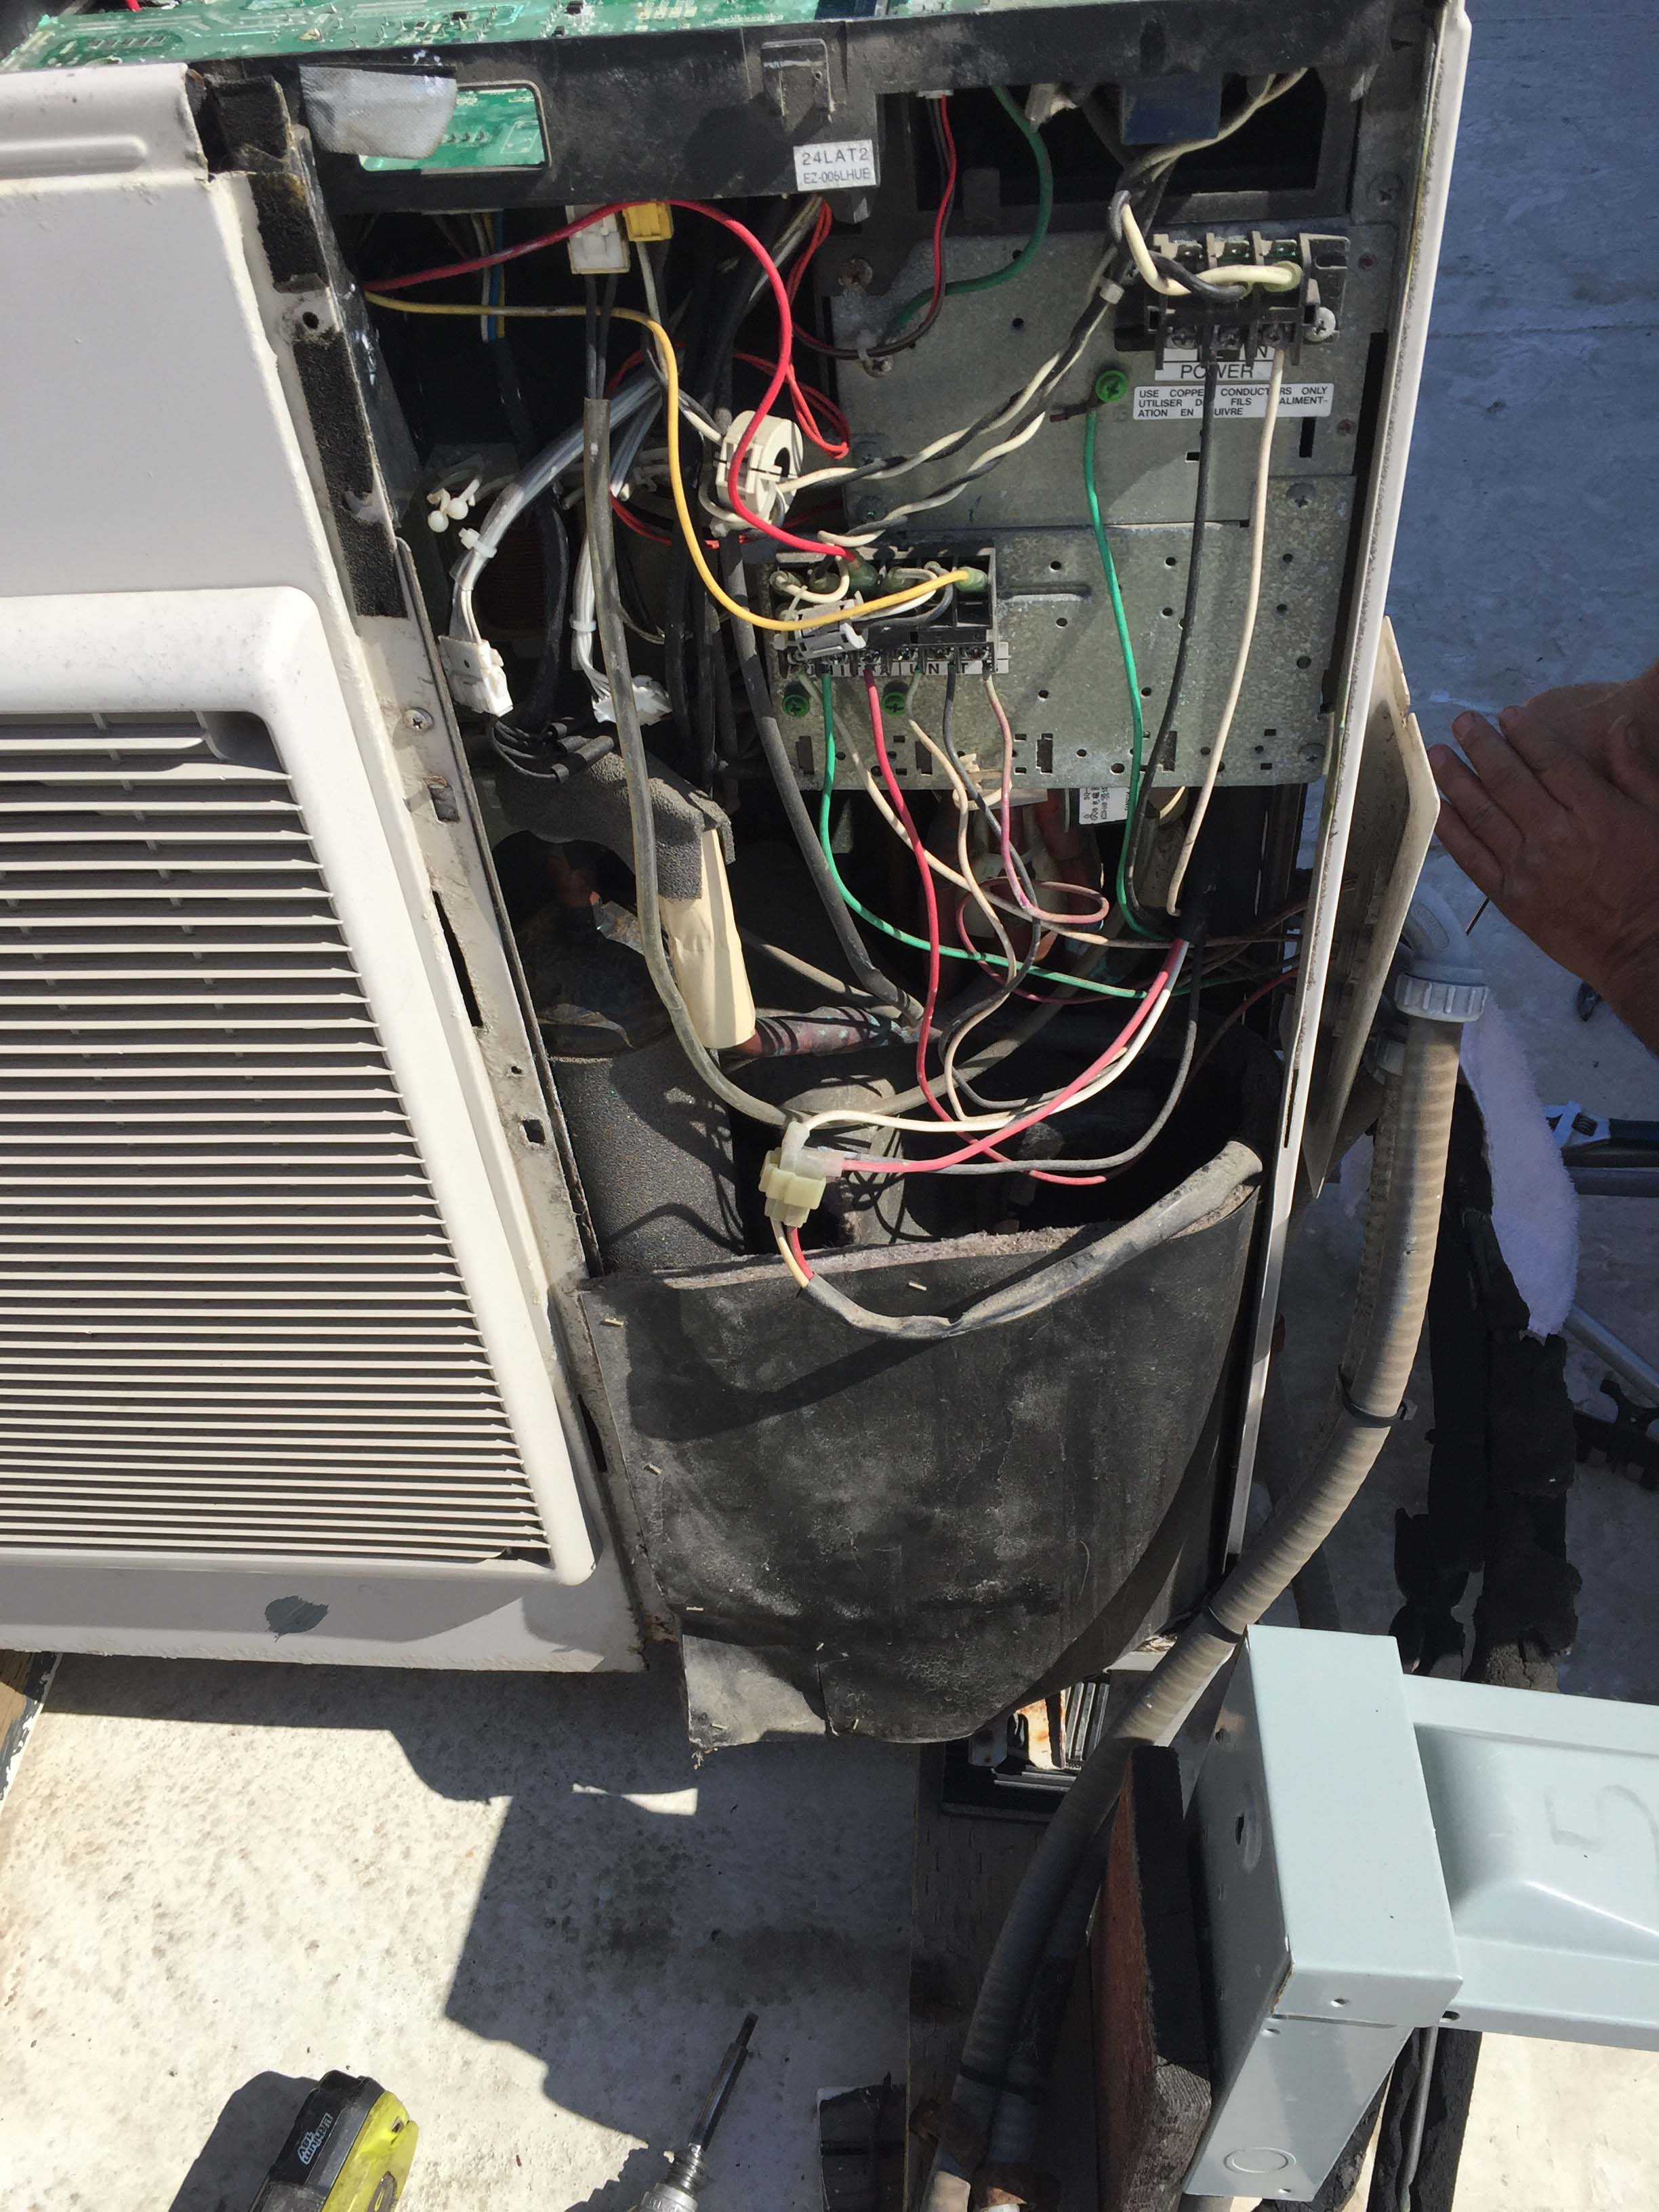 3 phase air conditioner wiring diagram phil  i have a fujitsu model aou24rml split type    air     phil  i have a fujitsu model aou24rml split type    air